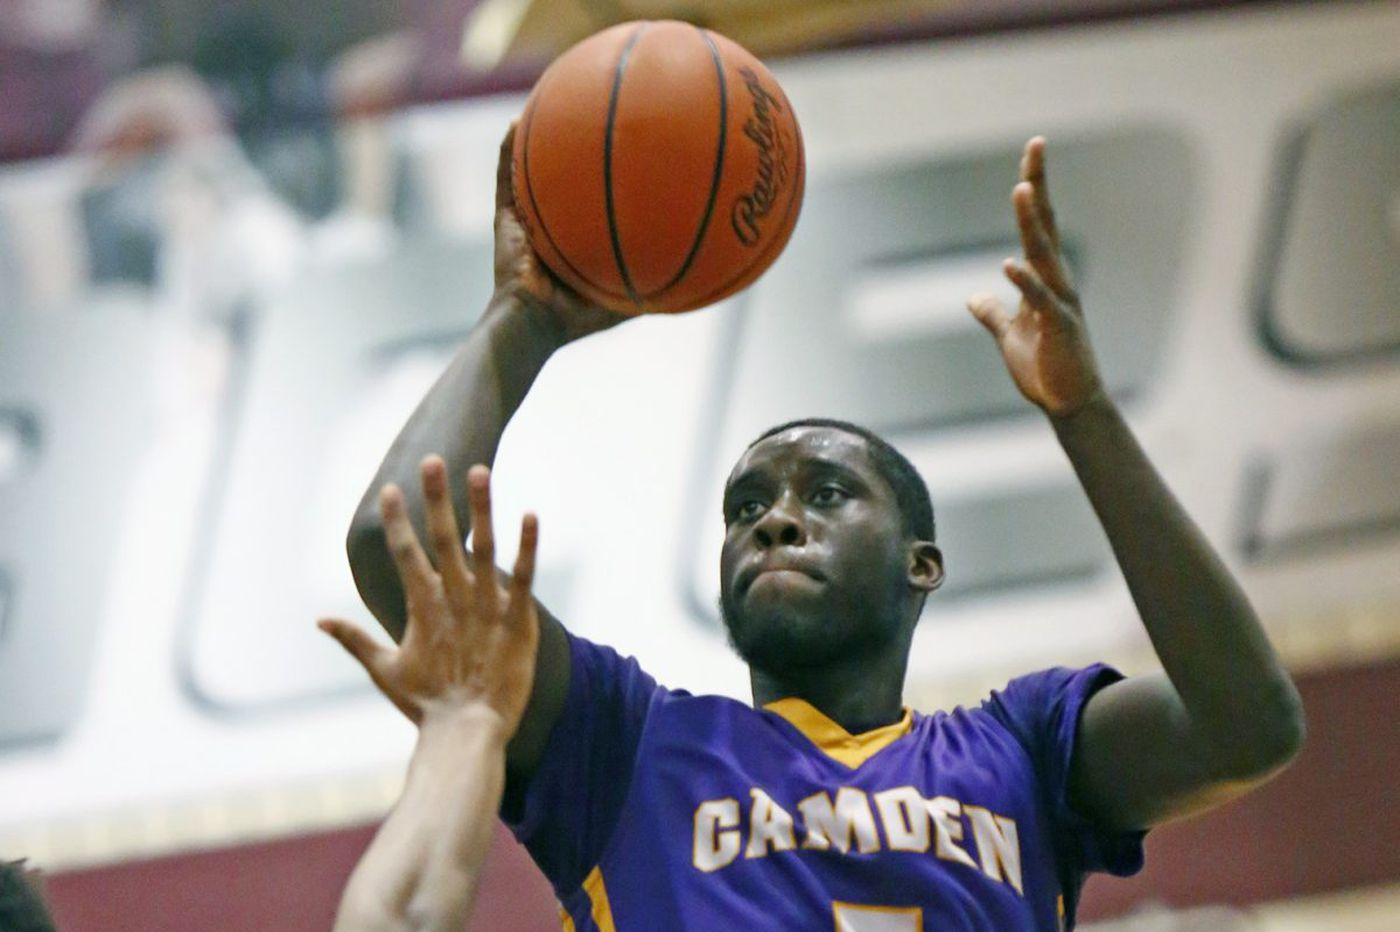 Camden to play Imhotep Charter in clash of No. 1 teams